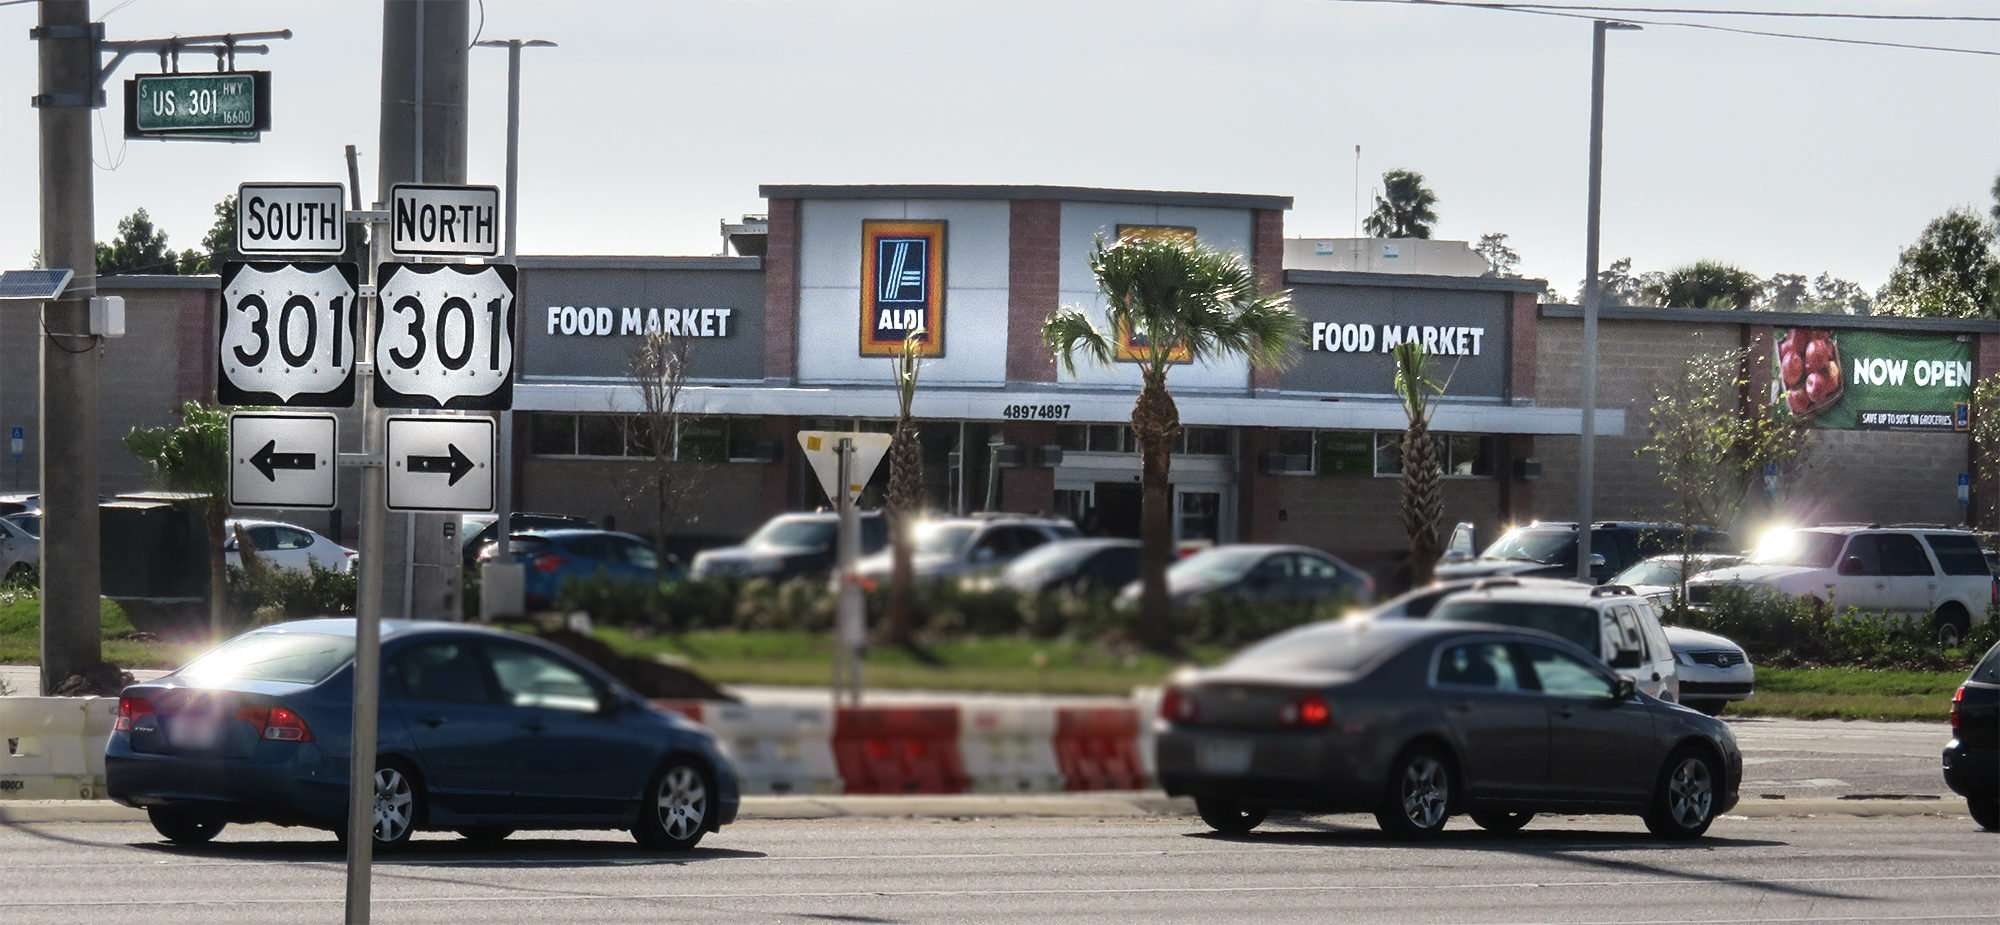 12.17.2016 - Aldi at 301 and 674 opens Dec 15, 2015 in Sun